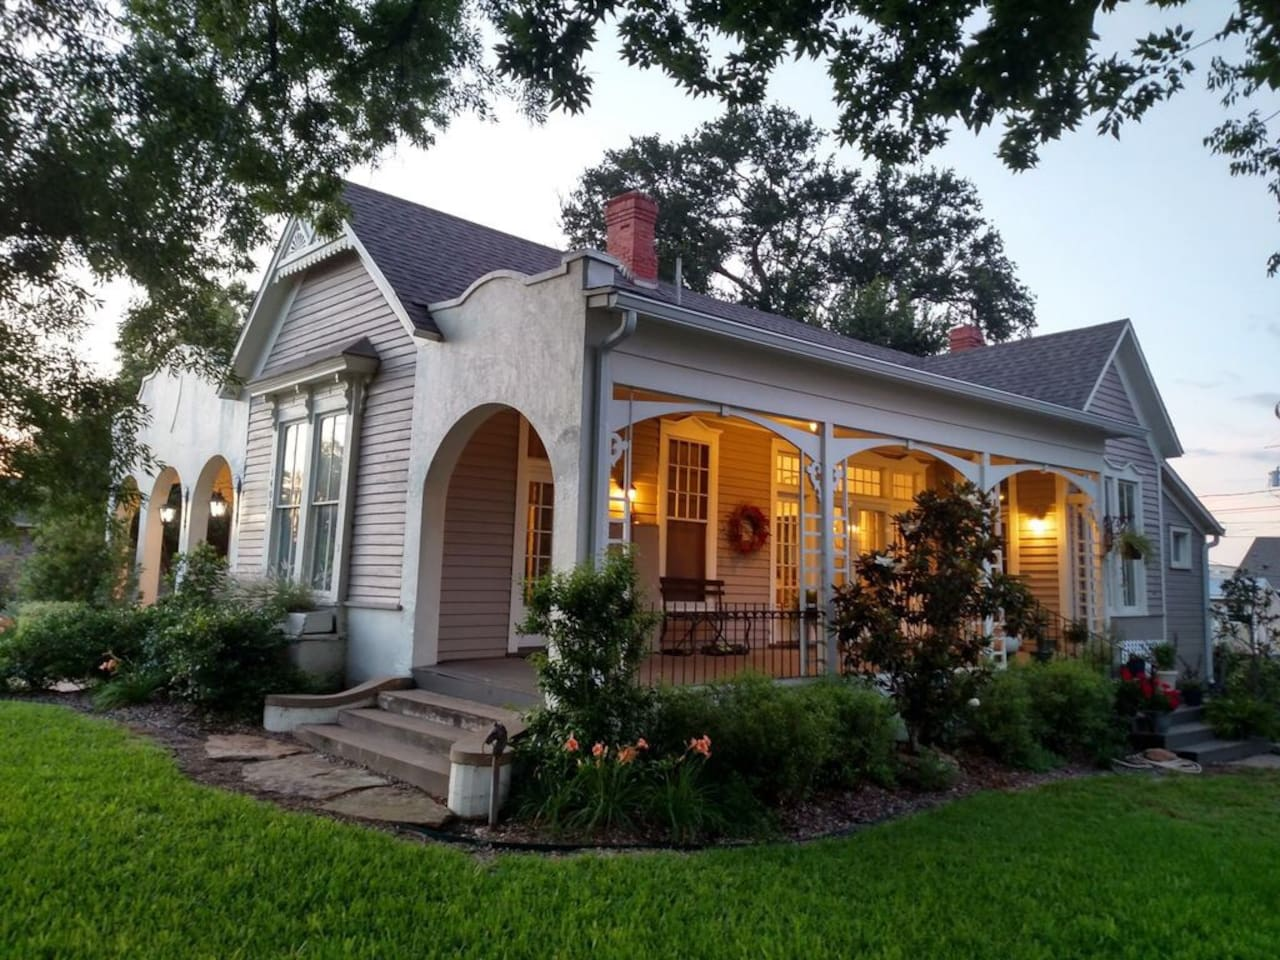 """As seen on Fixer Upper, Season 1, Episode 12 """"A 5th Street Story""""  The home is a mix of converging architectural styles.  Built in 1910, the home mixes Victorian, Art Deco and Mission styles."""